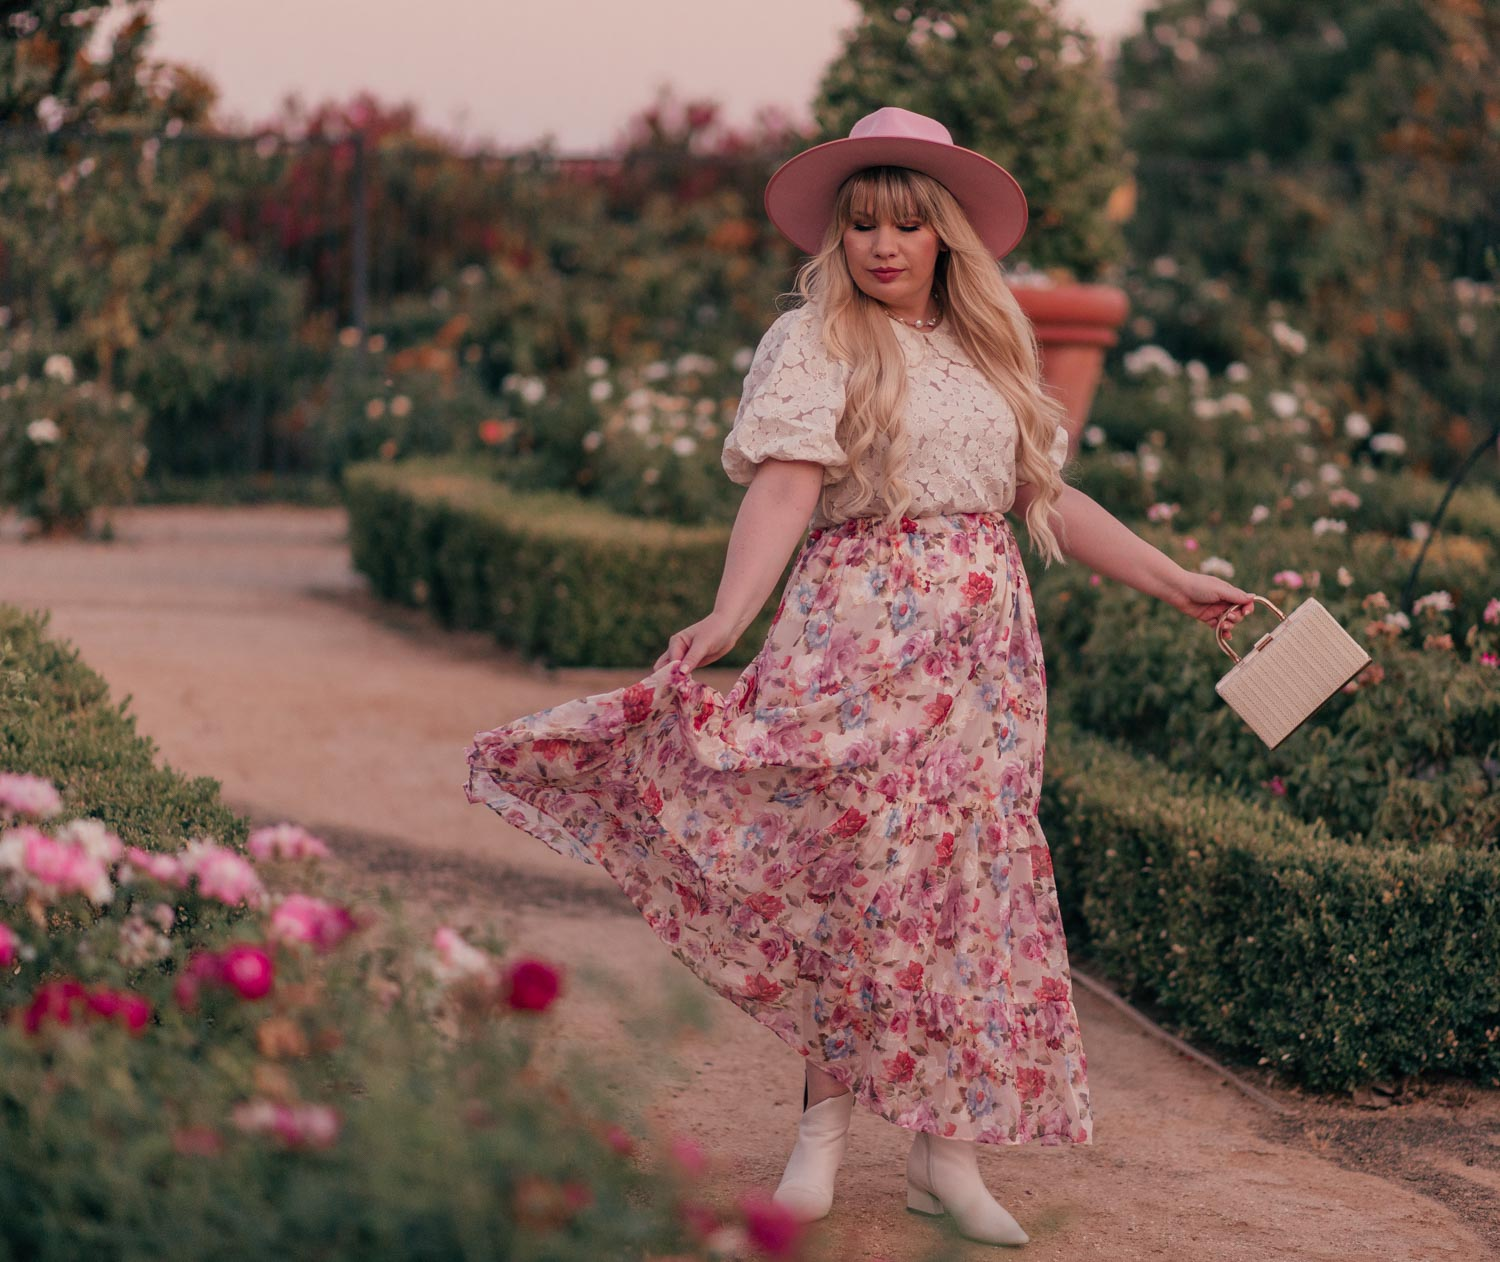 Feminine Fashion Blogger Elizabeth Hugen of Lizzie in Lace shares her top 5 Feminine Summer Essentials for the Girly Girl